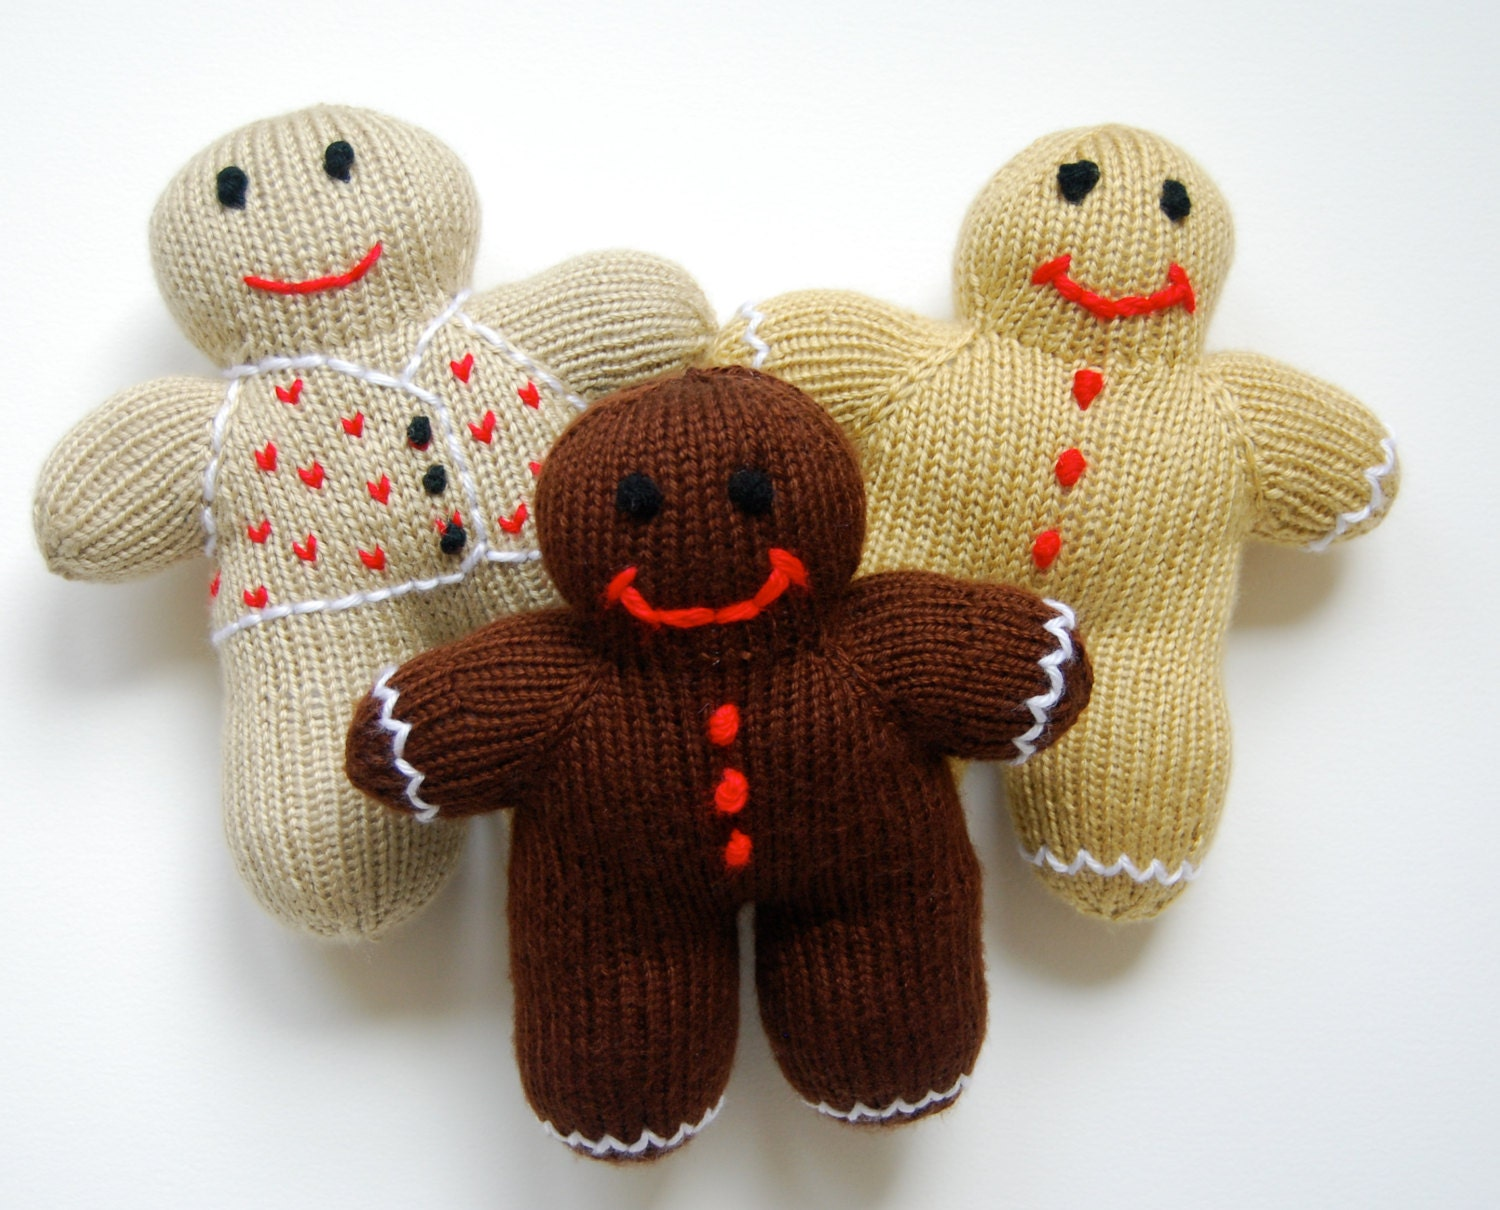 Plush Gingerbread Man hand knit toy knit plush toy knit